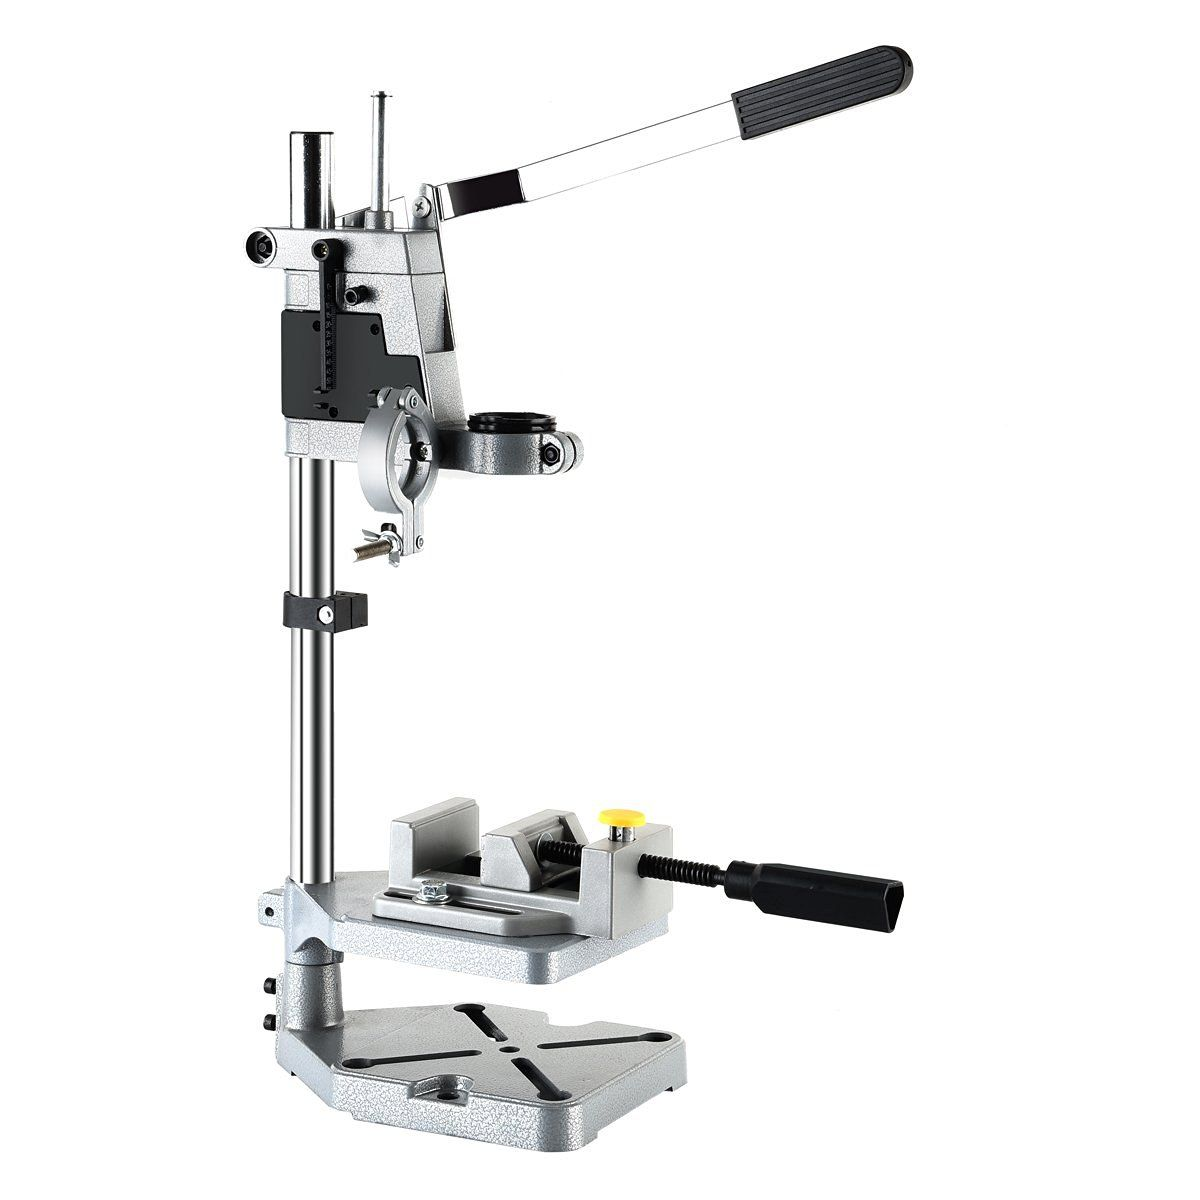 Amyamy Electric Drill Bench Drill Press Stand With Drill Press Vise Drill Stand Rotary Tool Work Station Fl Drill Press Stand Electric Hand Drill Drill Holder